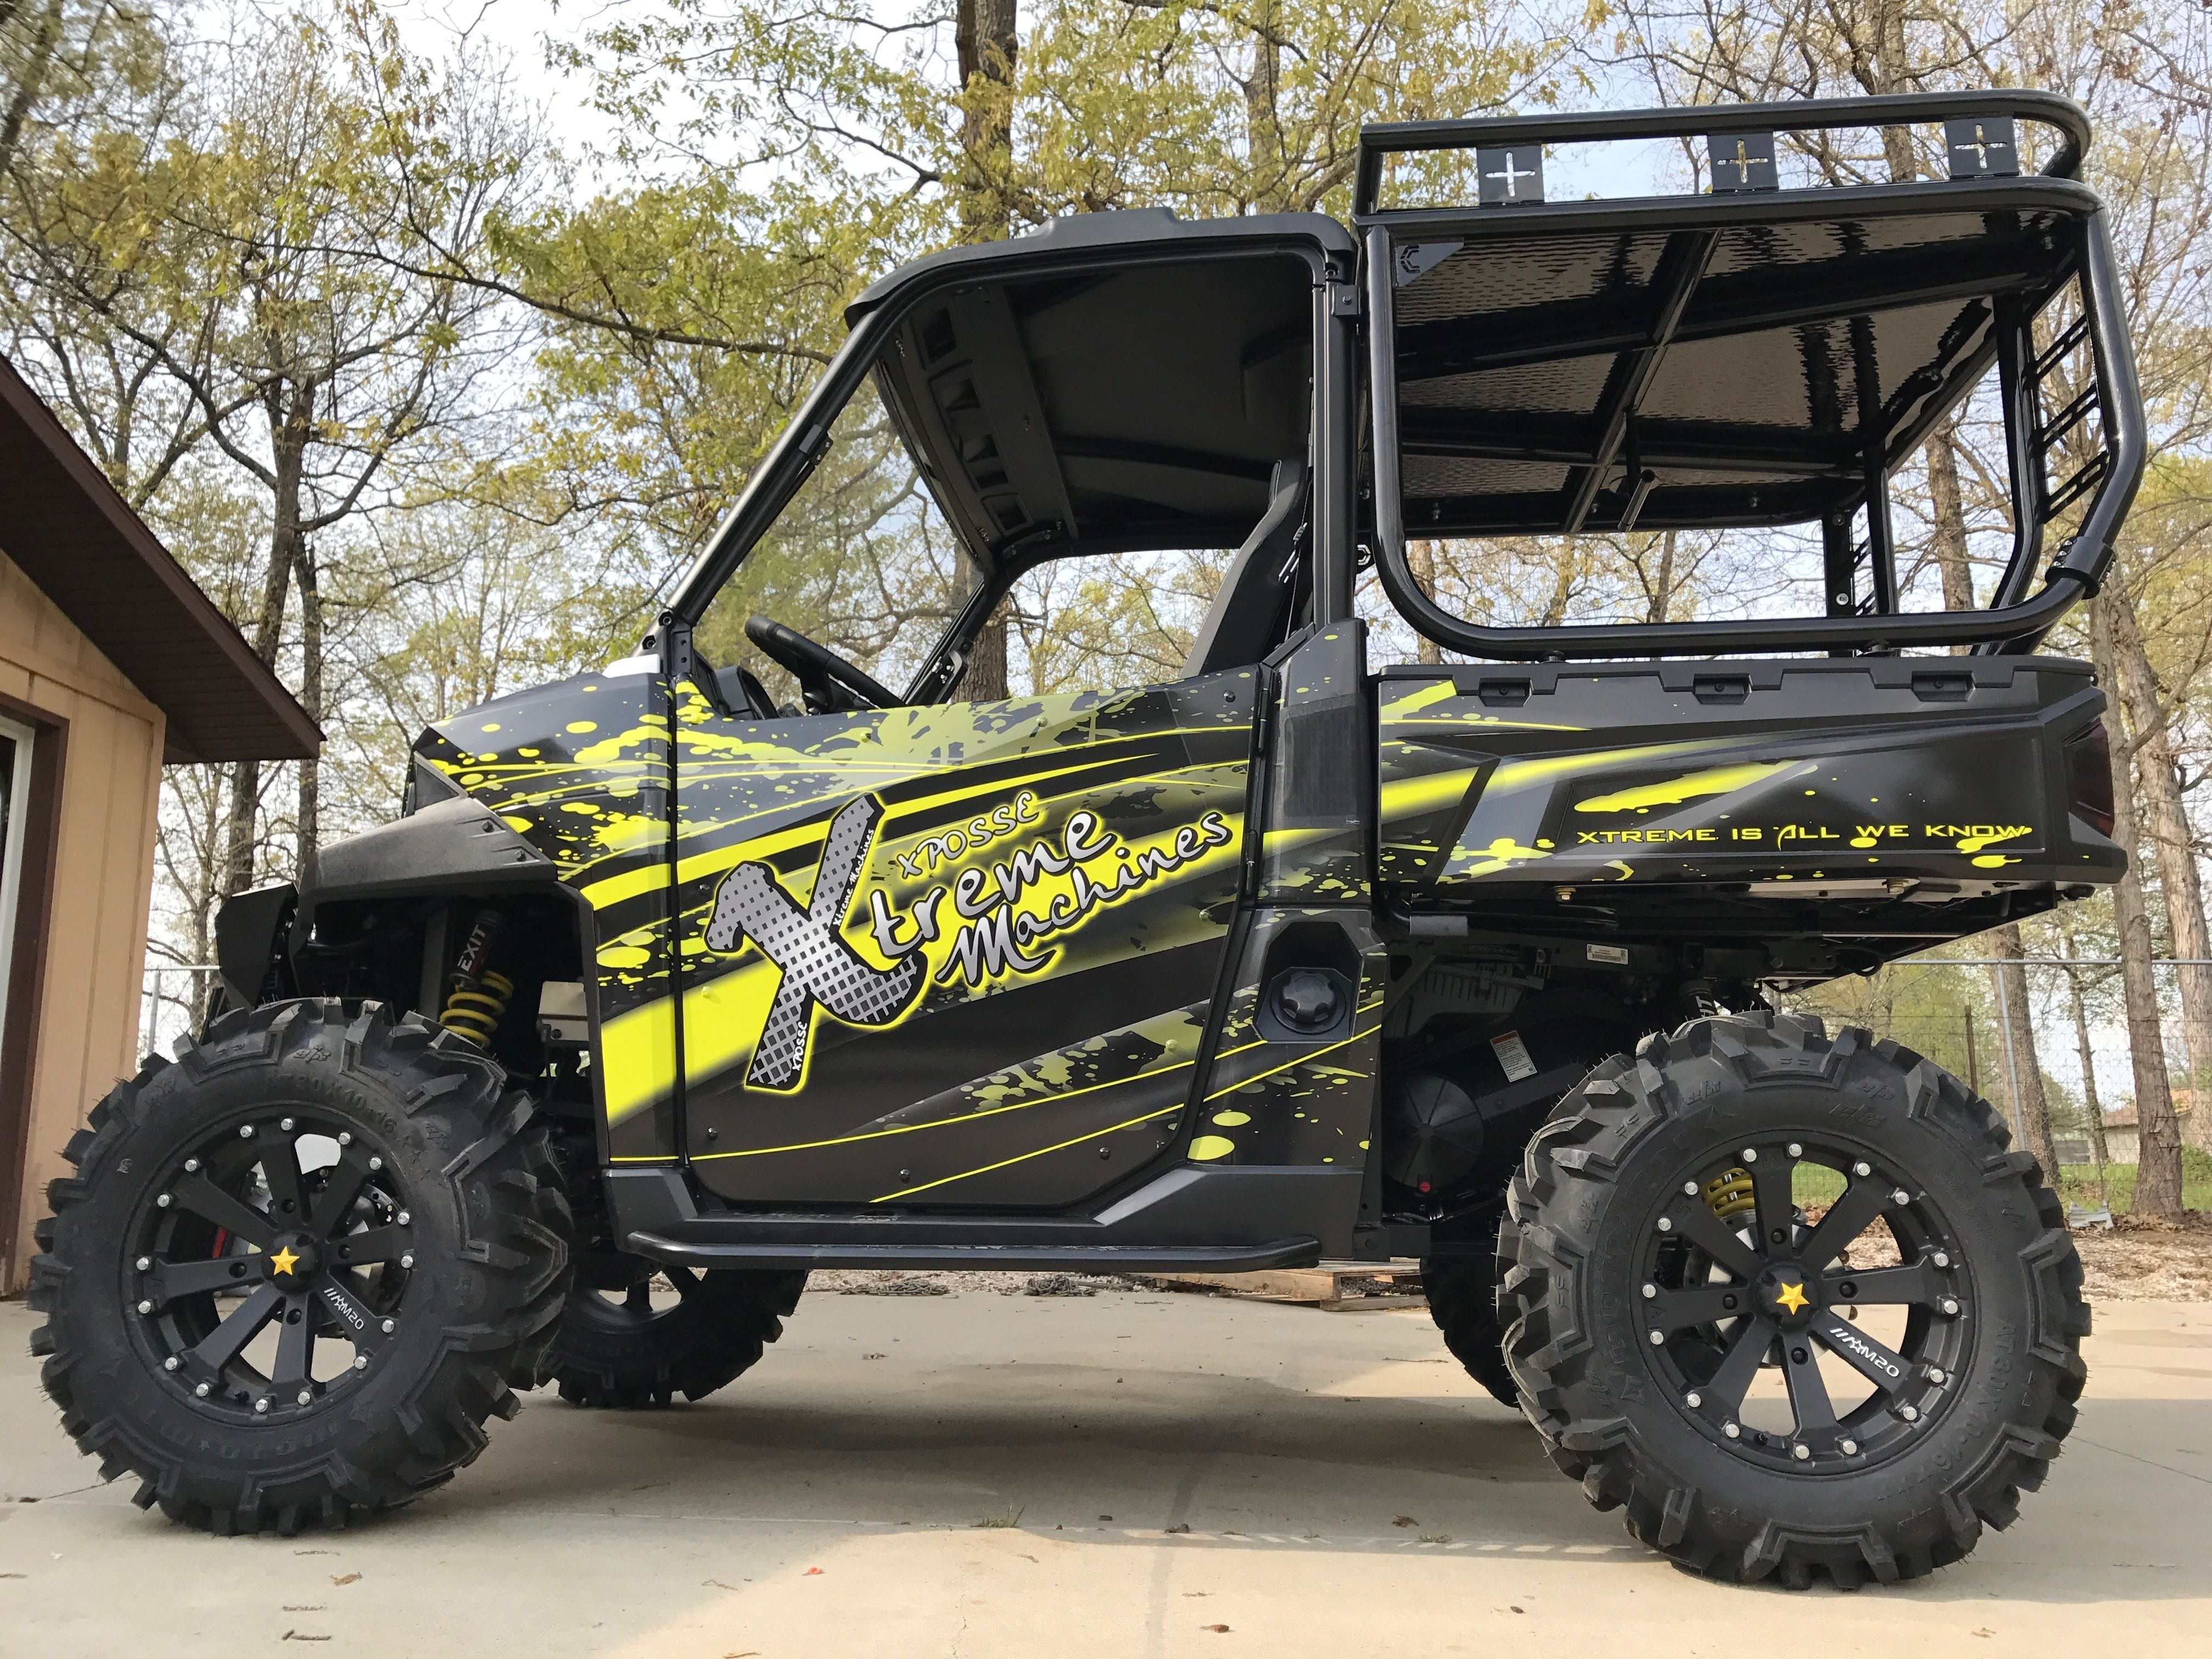 Pin By Ian May On Offroad Vehicles Polaris Ranger Polaris Ranger Accessories Polaris Ranger Roll Cage Extension